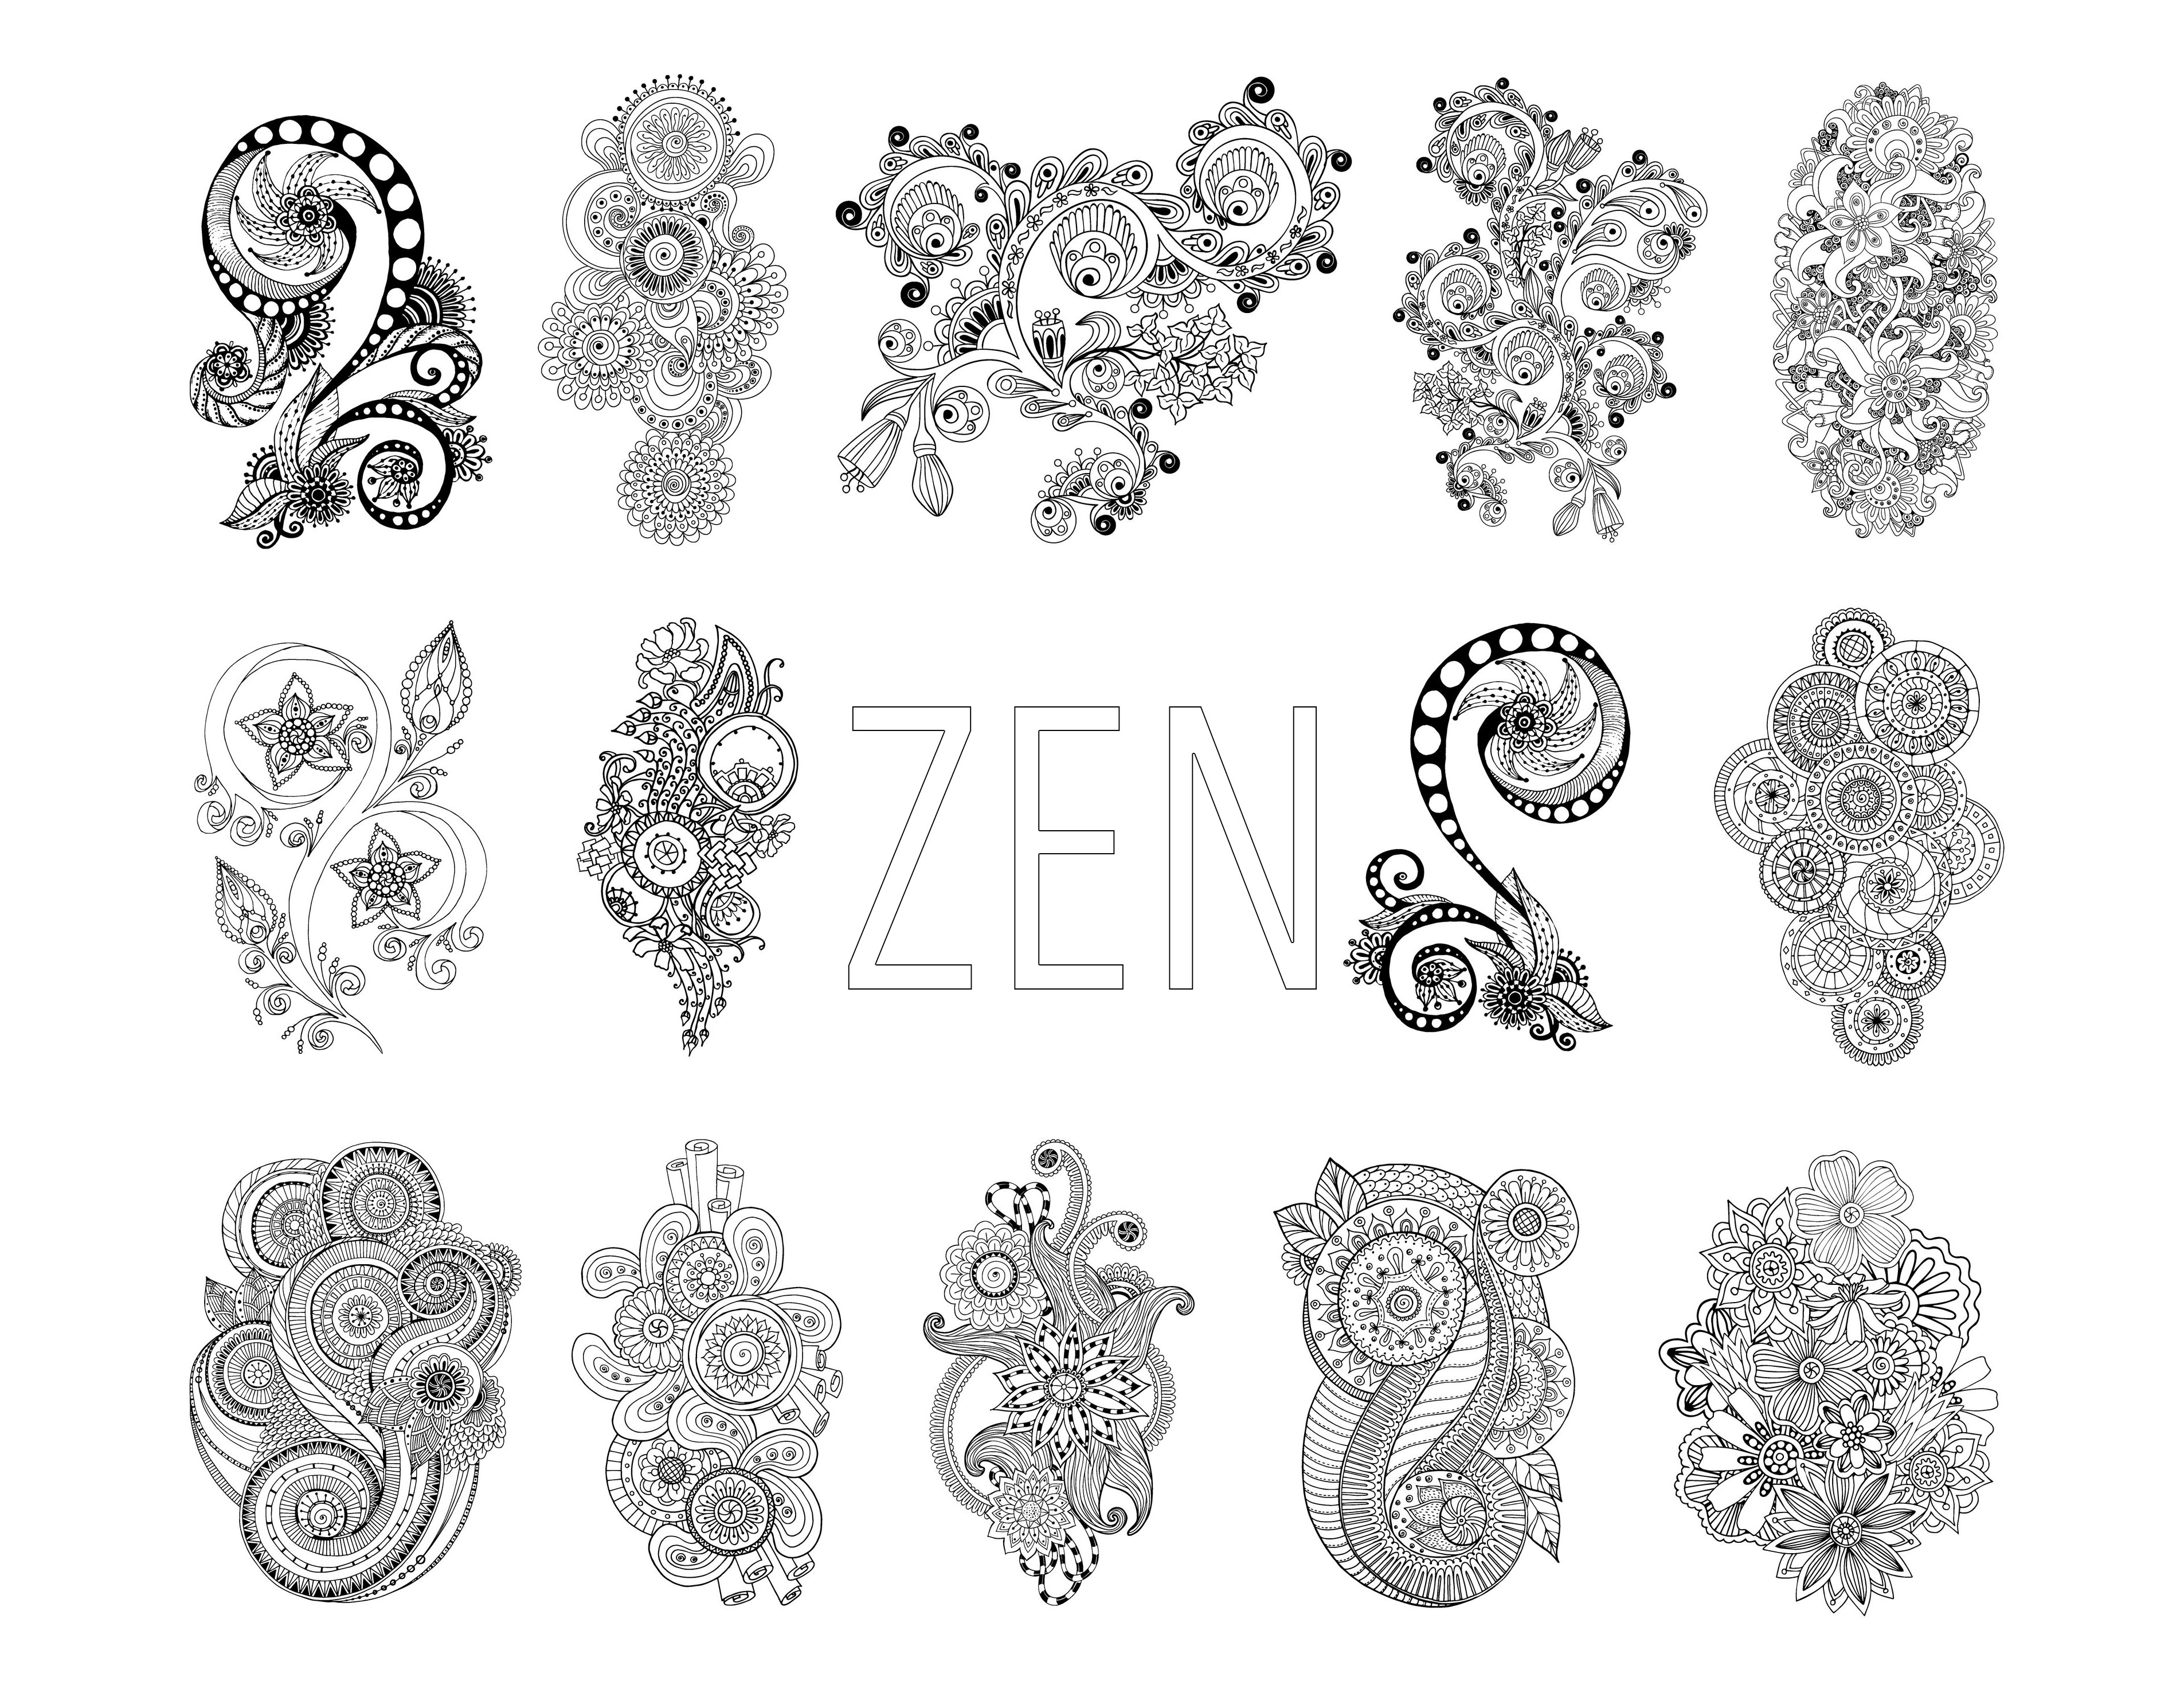 Coloring zen antistress abstract pattern inspired by flowers full set by juliasnegireva